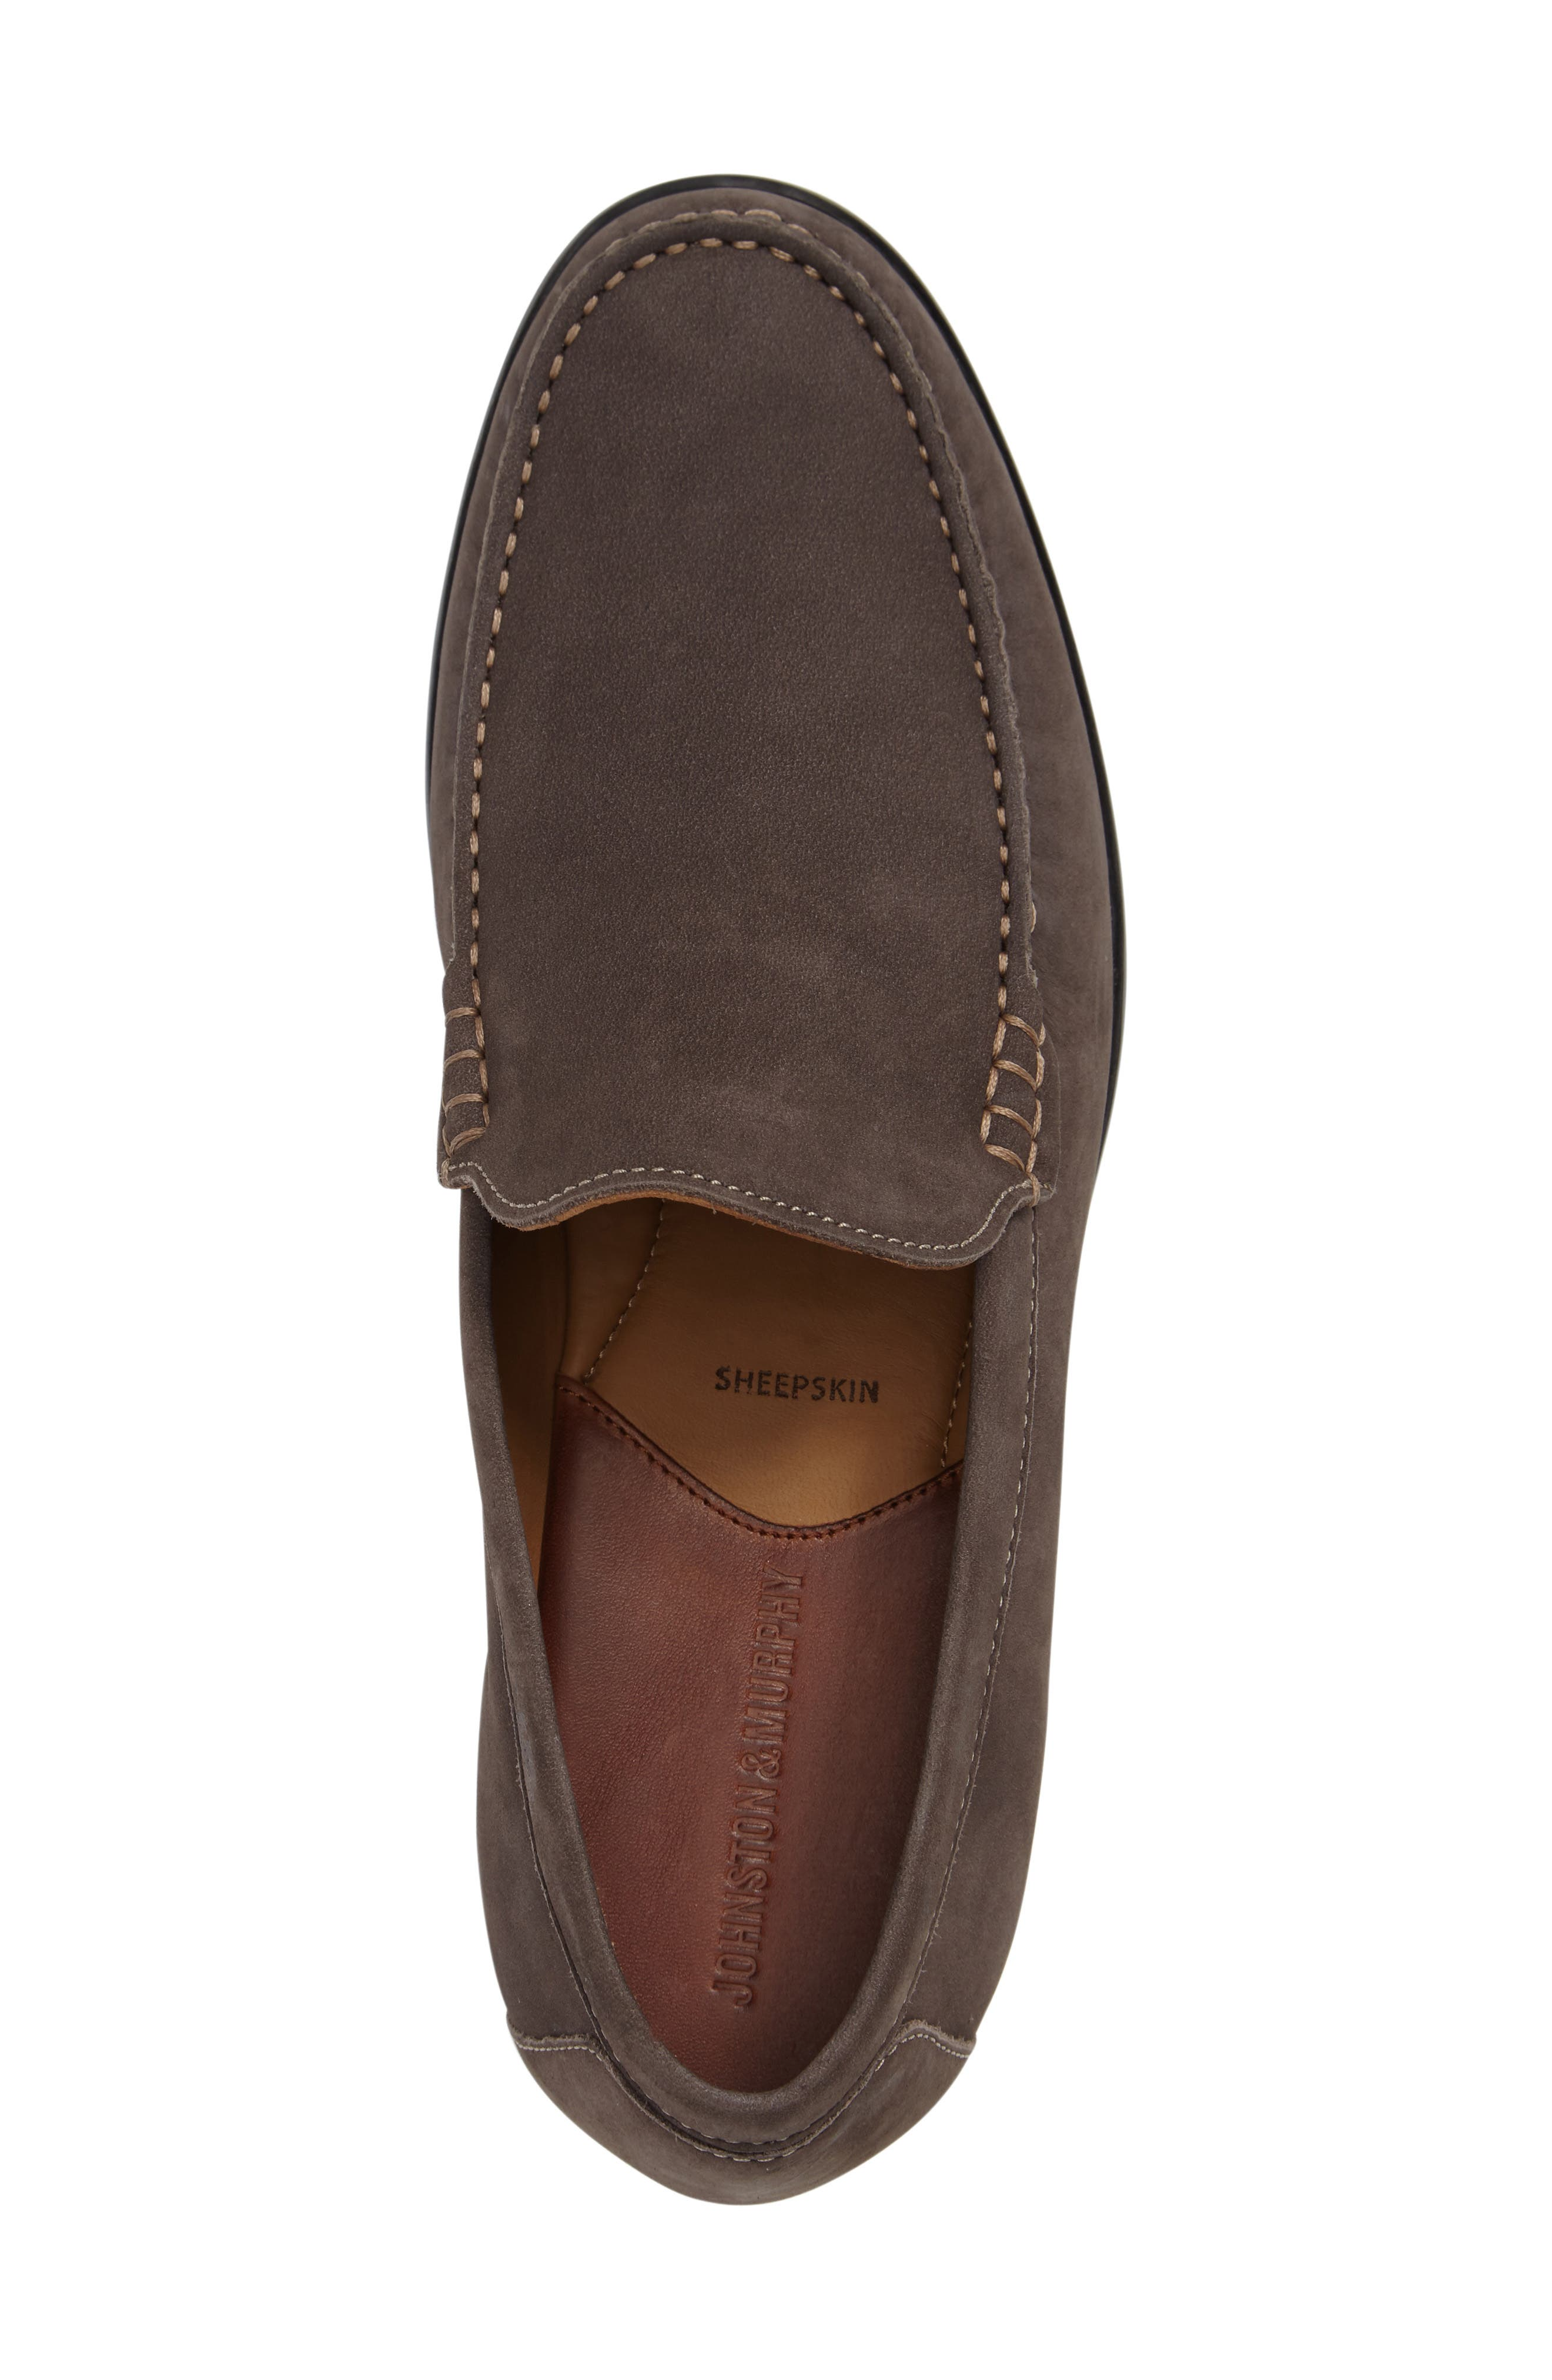 Cresswell Venetian Loafer,                             Alternate thumbnail 3, color,                             020